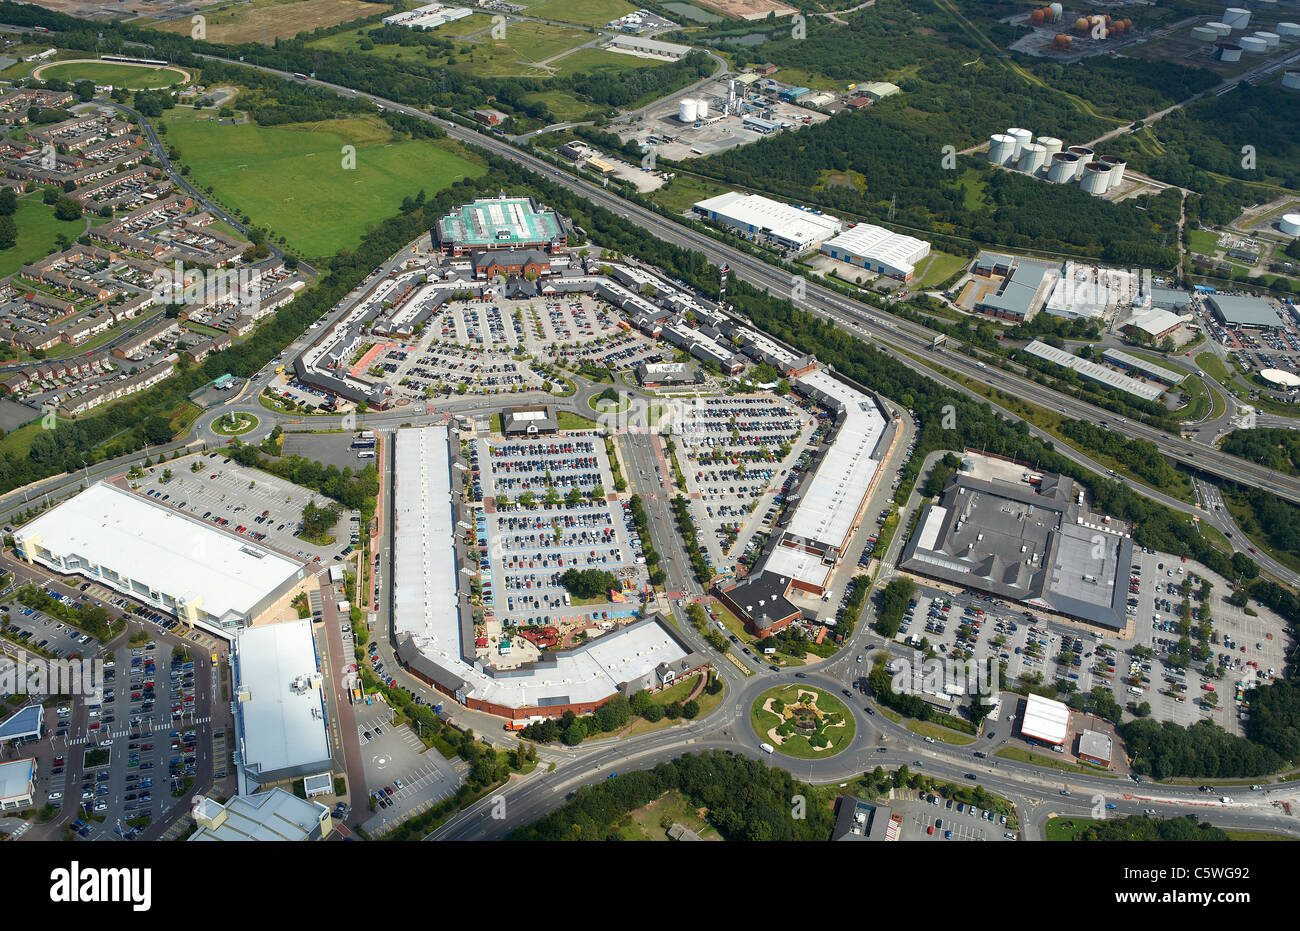 Cheshire Oaks Shopping Centre, Wirrall, North West England - Stock Image